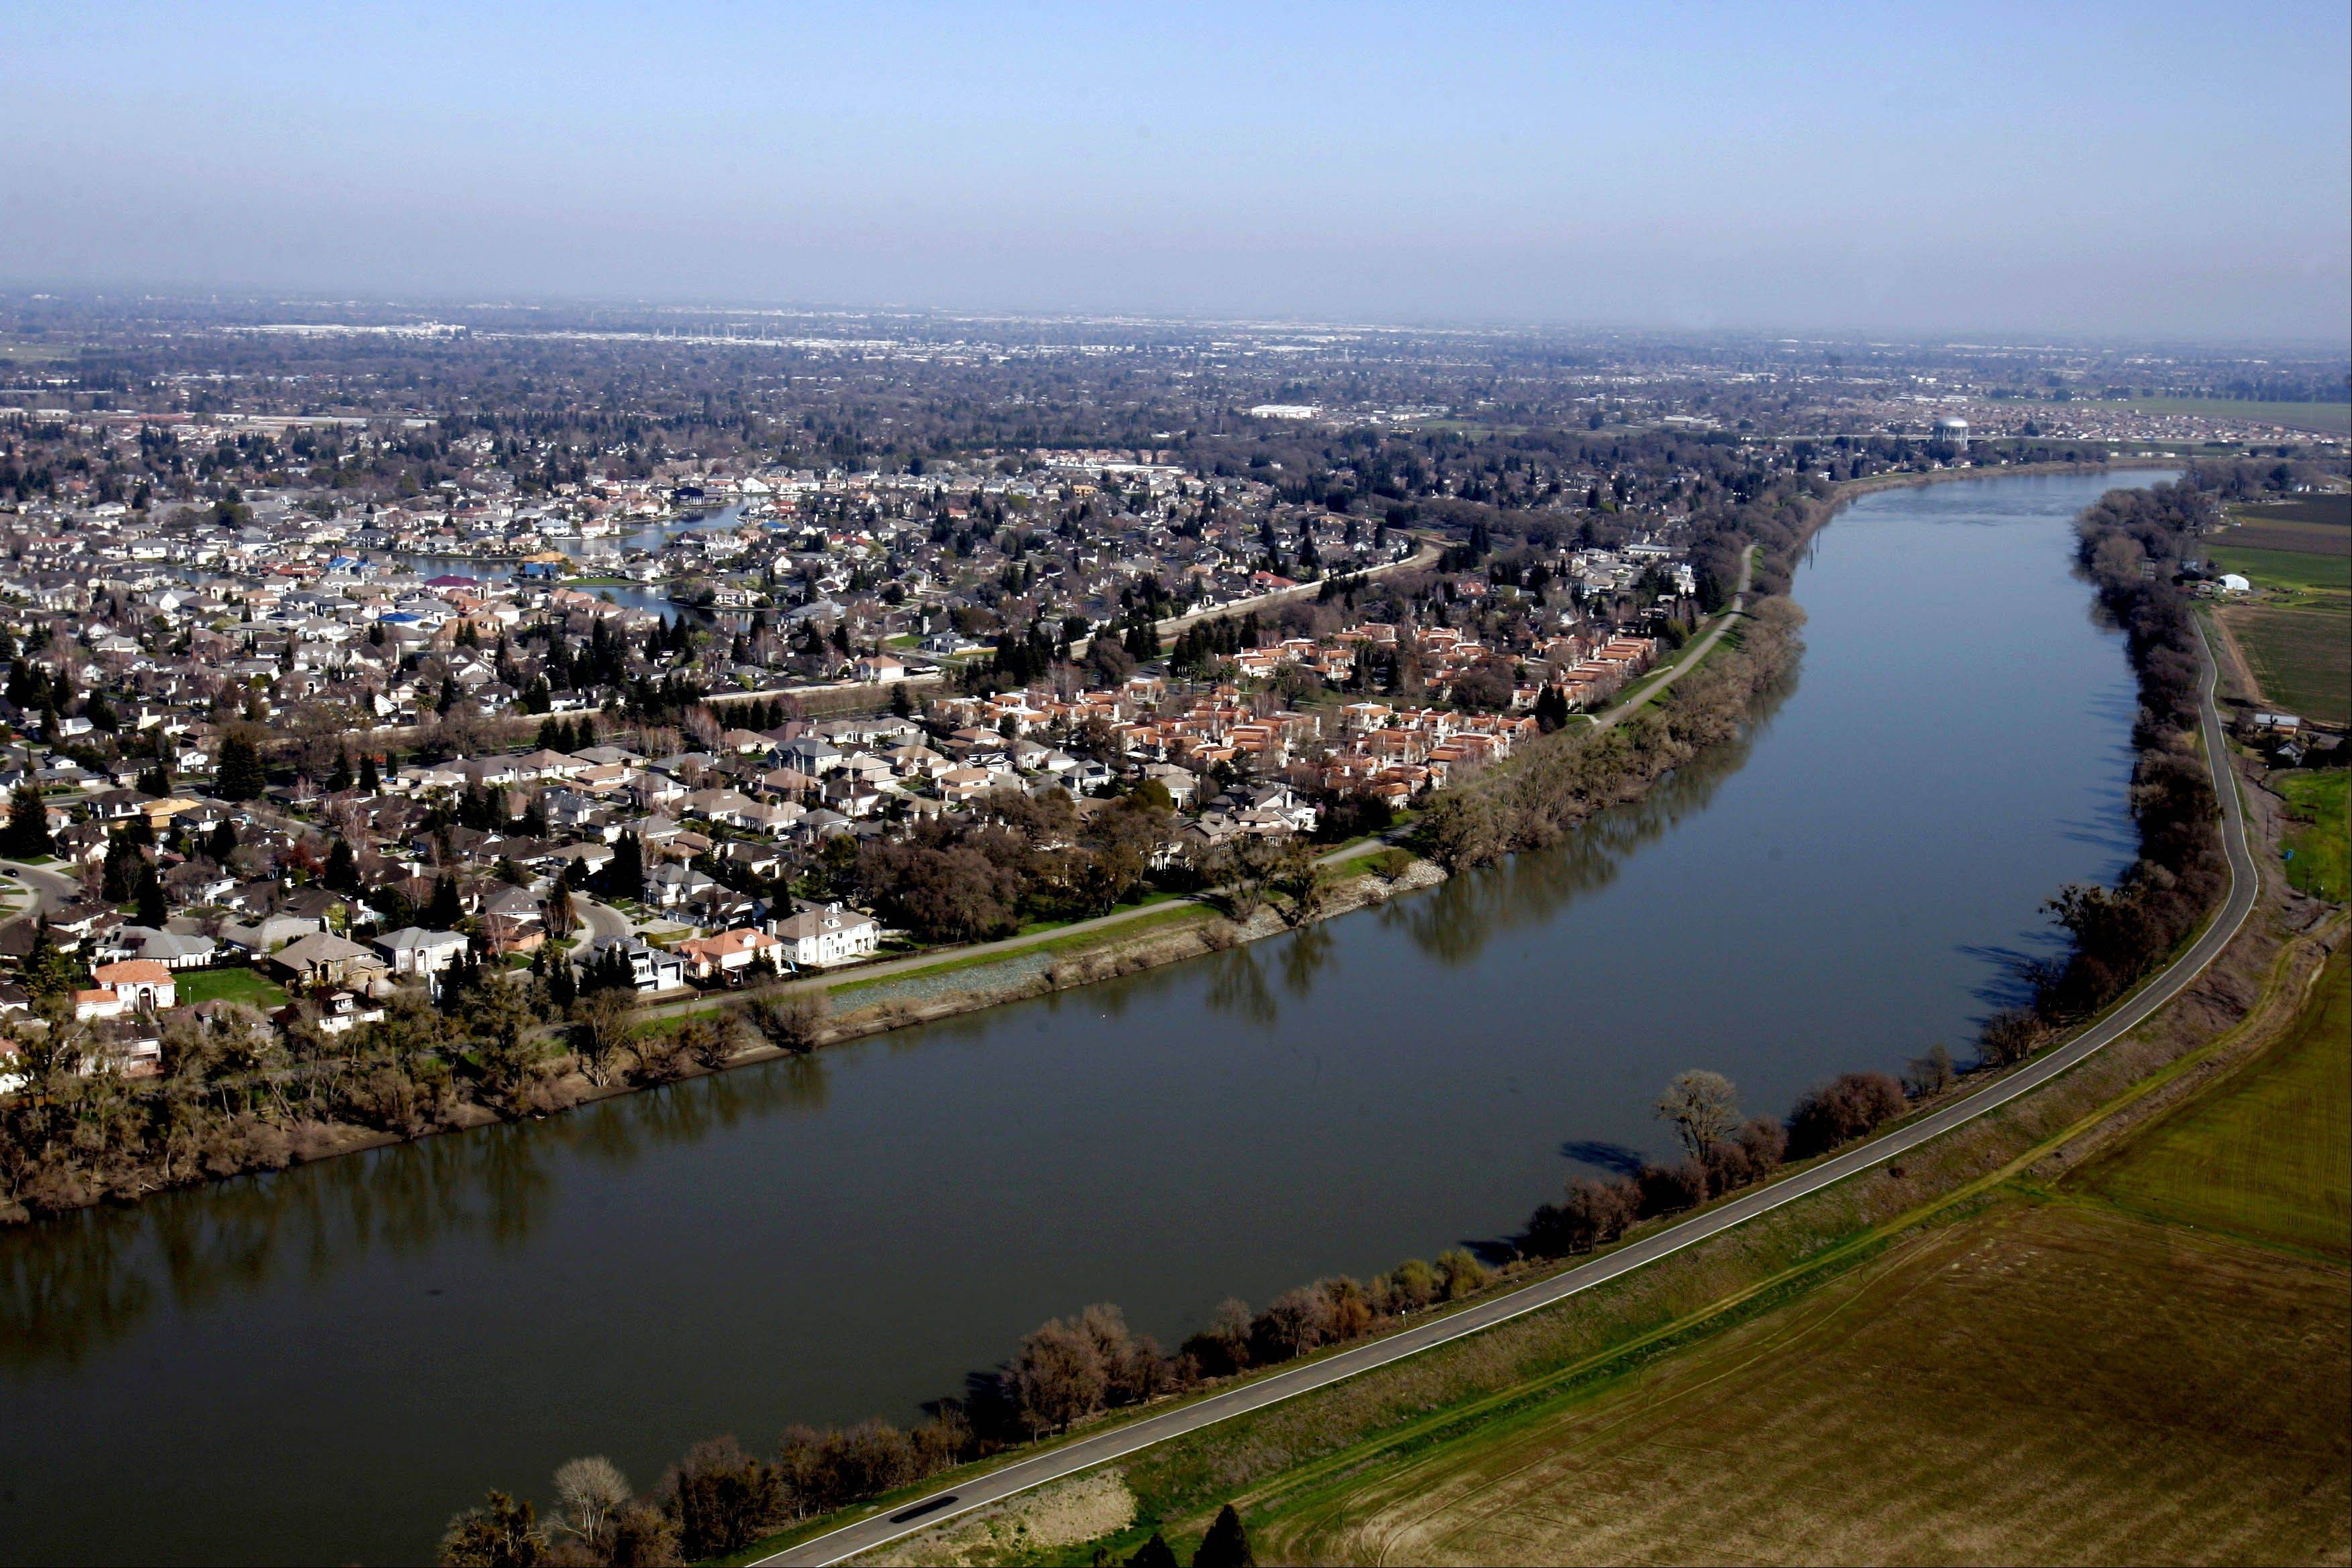 Houses located in the Pocket Area of Sacramento, Calif., along the Sacramento River. Aa 42-mile-long levee along the Sacramento and American rivers protects the Natomas area, a flood-prone basin transformed from cropland into a community of 100,000 with an airport, nearly three dozen schools and two interstates.